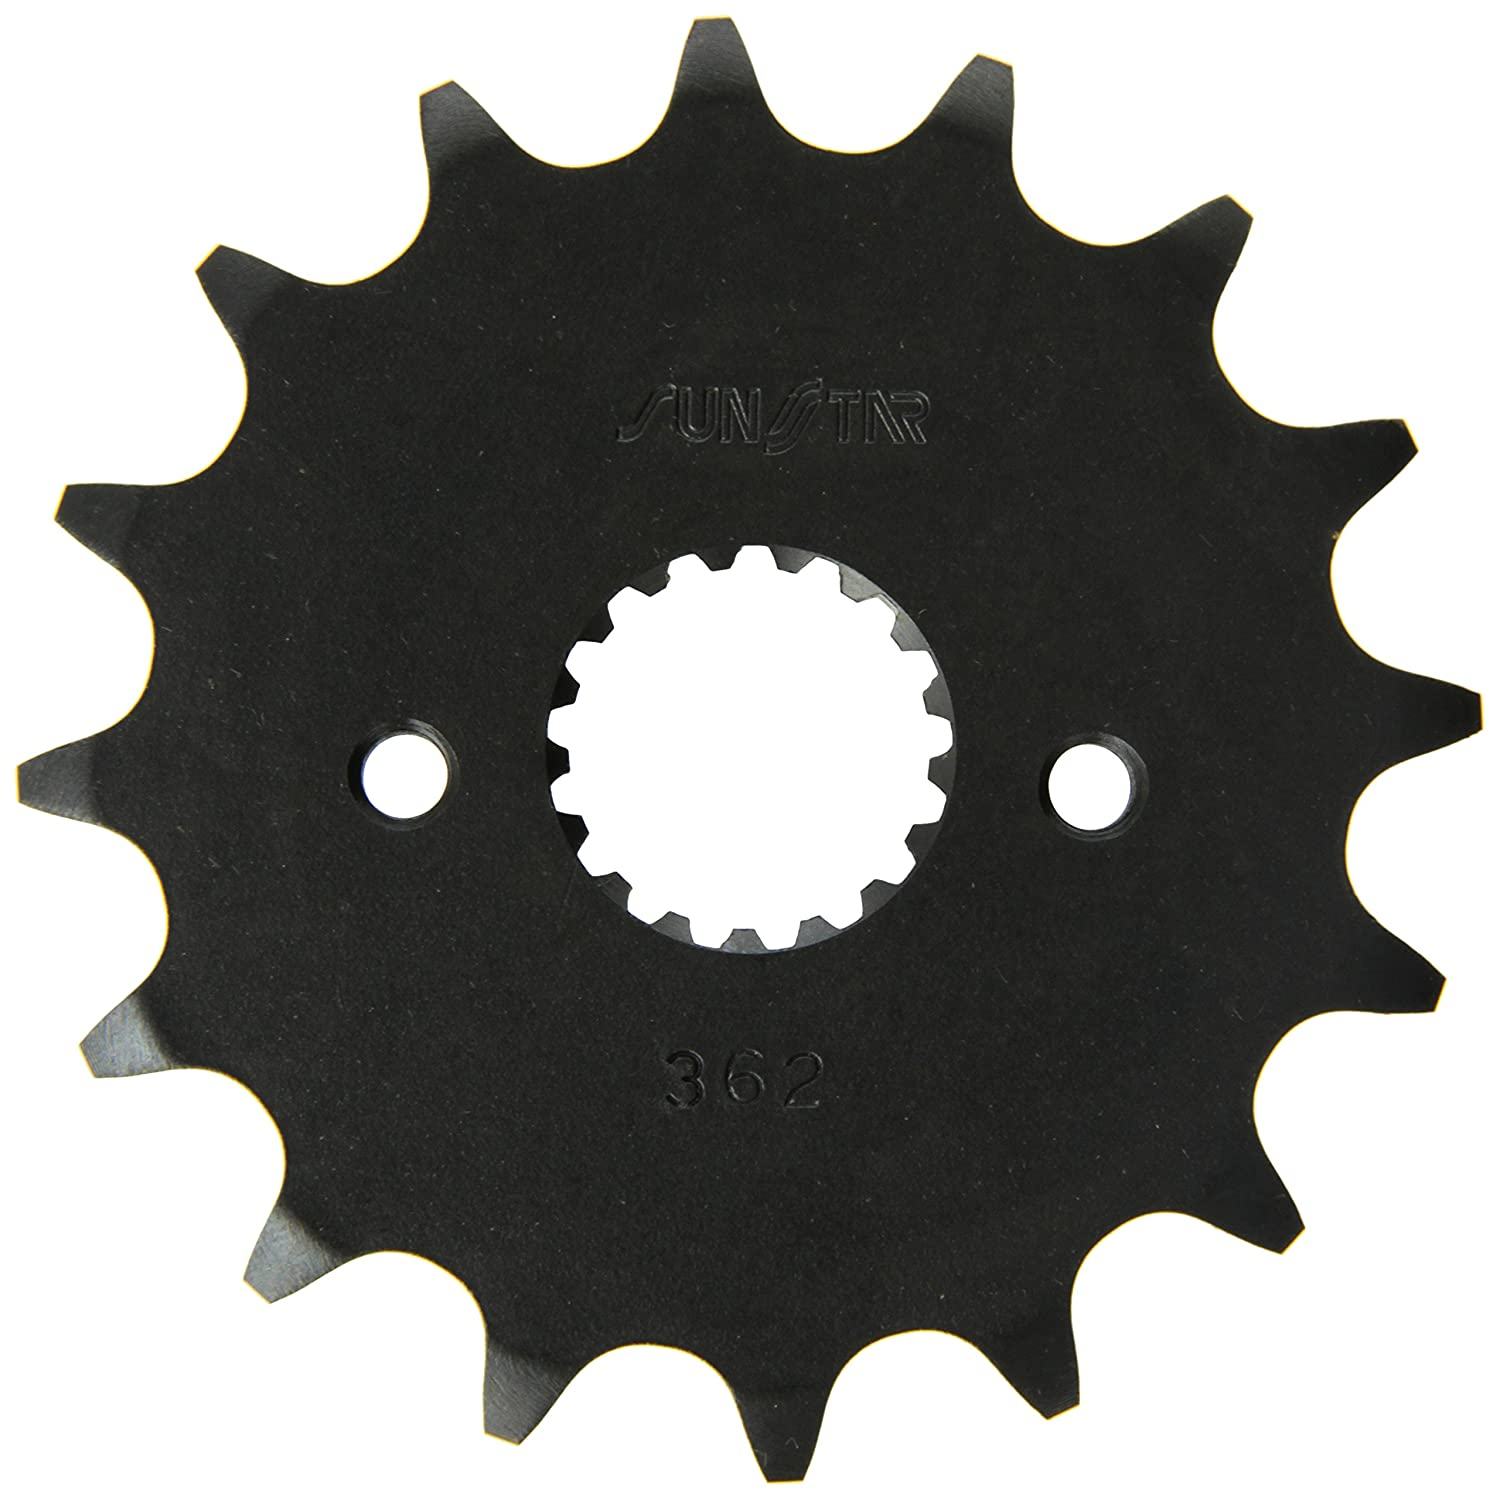 Sunstar 36216 16-Teeth 520 Chain Size Front Countershaft Sprocket